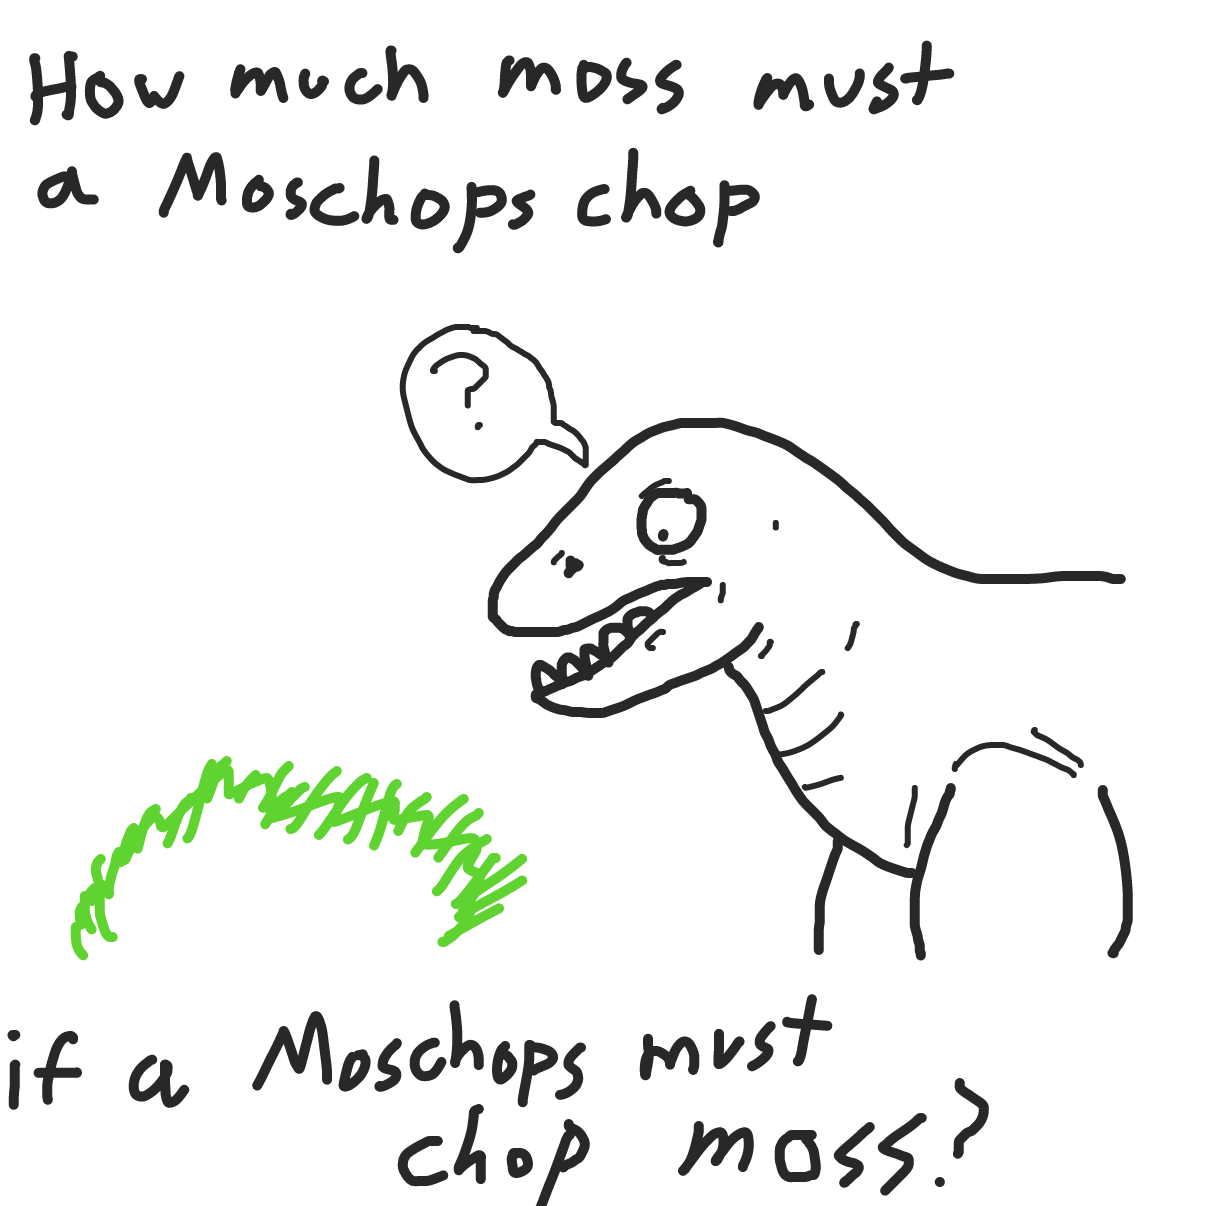 Drawing in how much moss must a moschops chop  by bajira